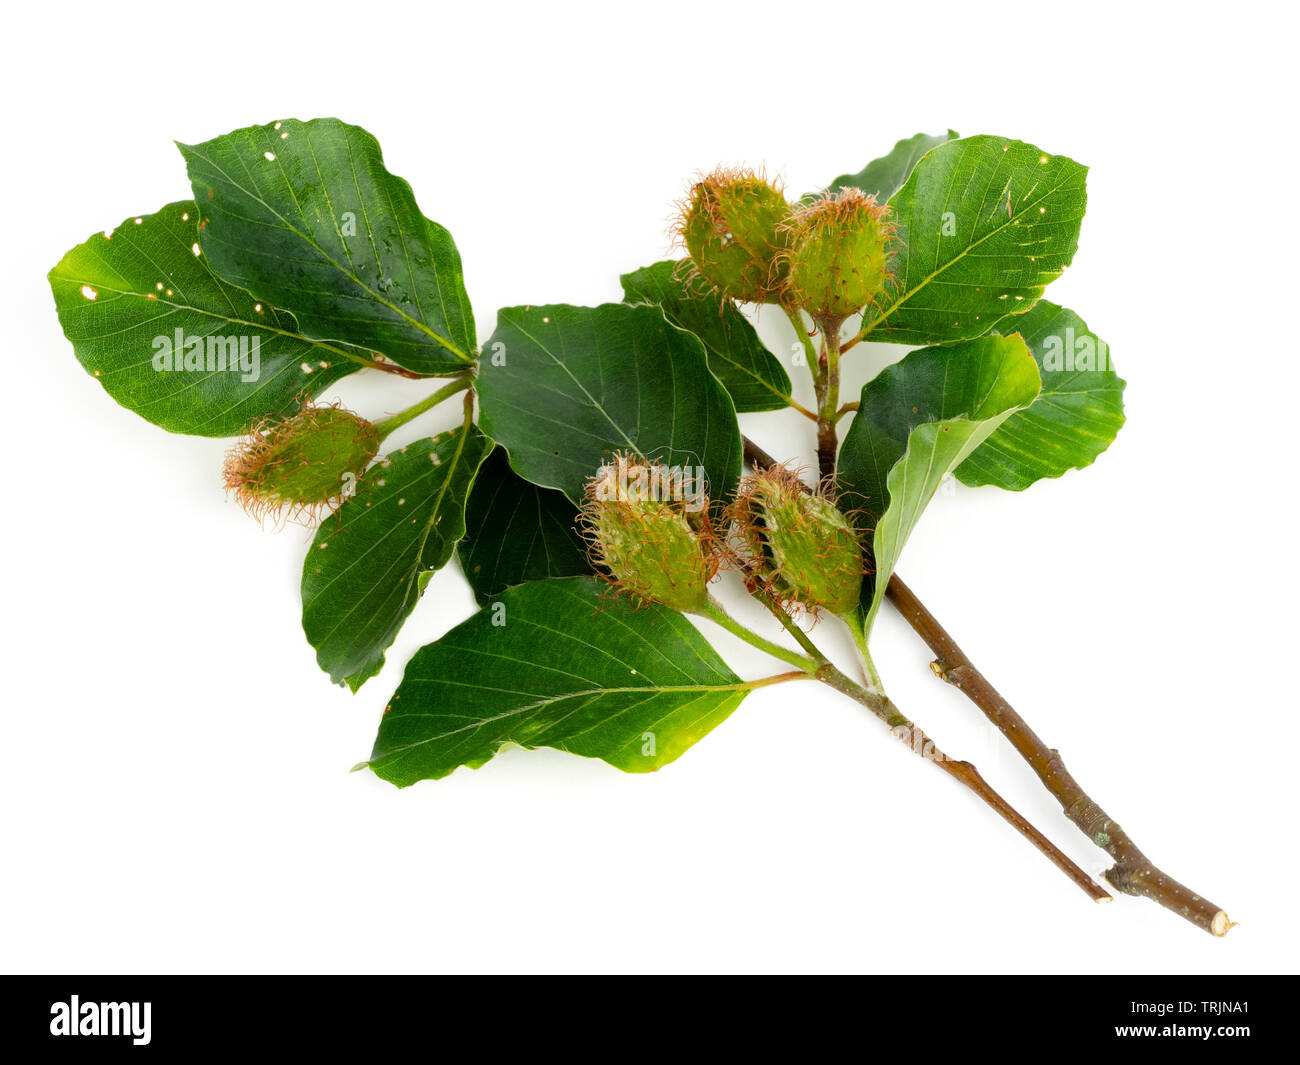 Summer foliage and developing hairy mast ofthe common beech, Fagus sylvatica, on a white background - Stock Image